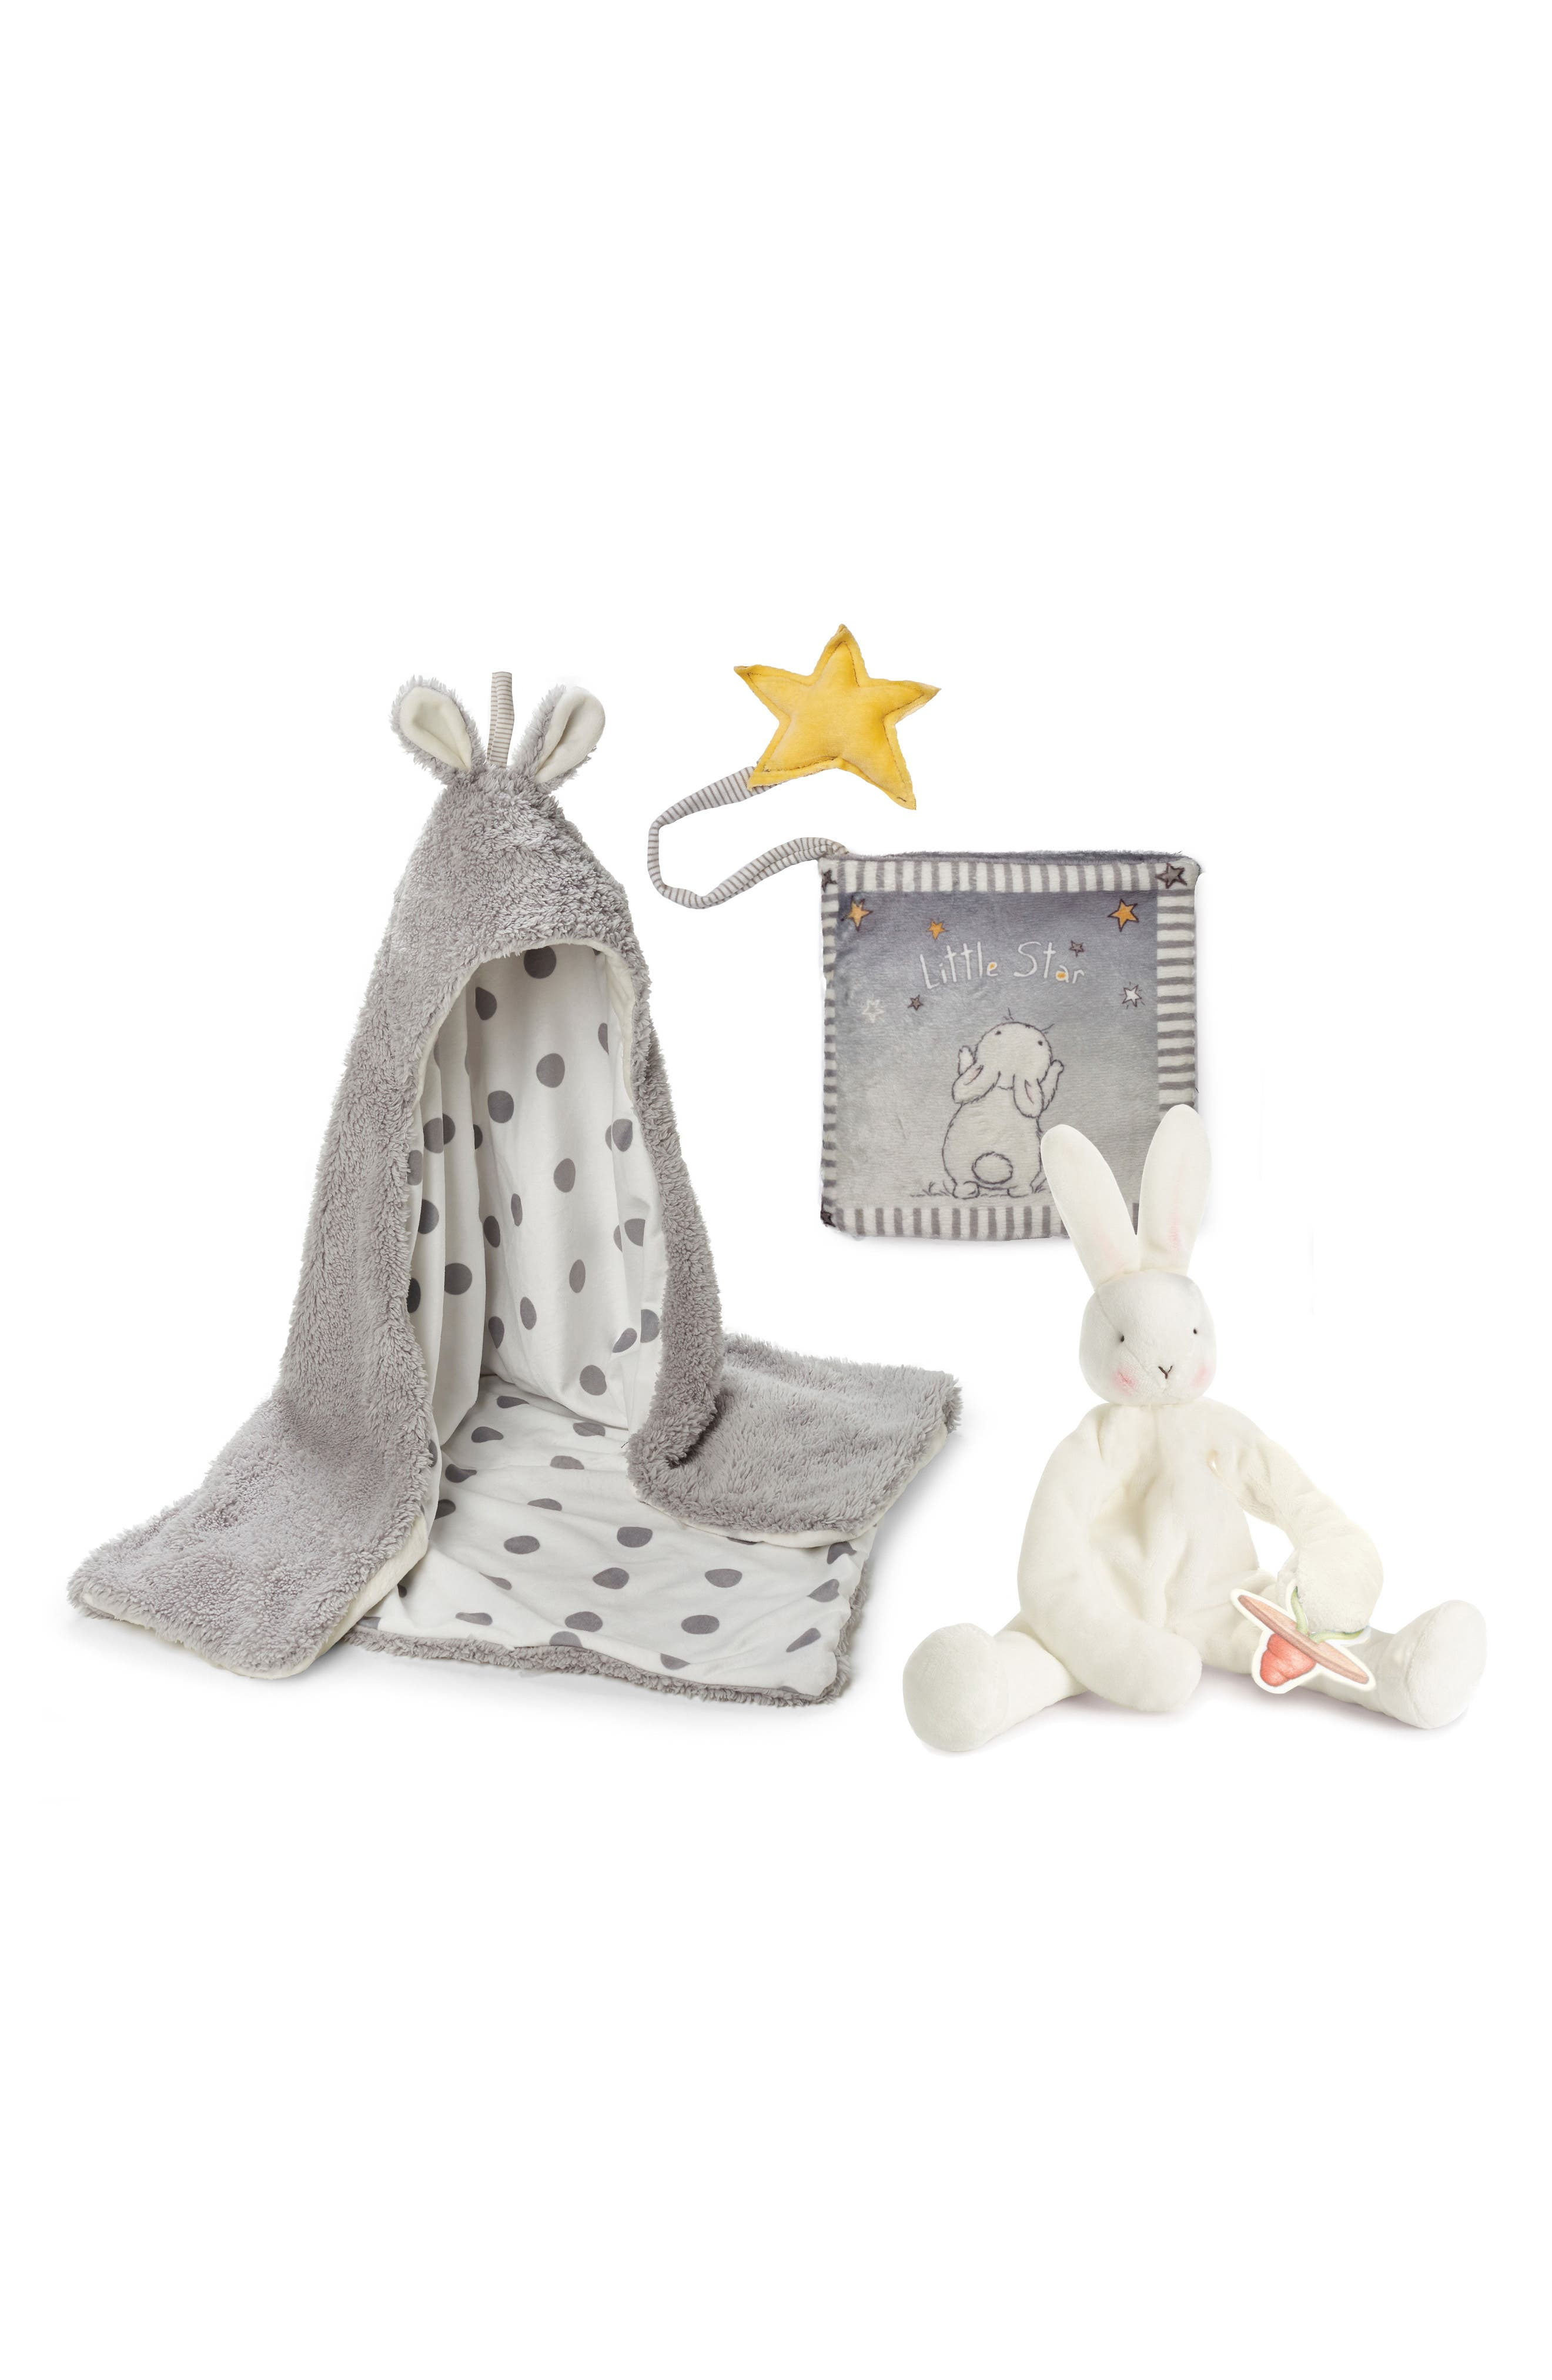 Bunnies by the Bay Storytime Hooded Blanket, Stuffed Animal & Book Set